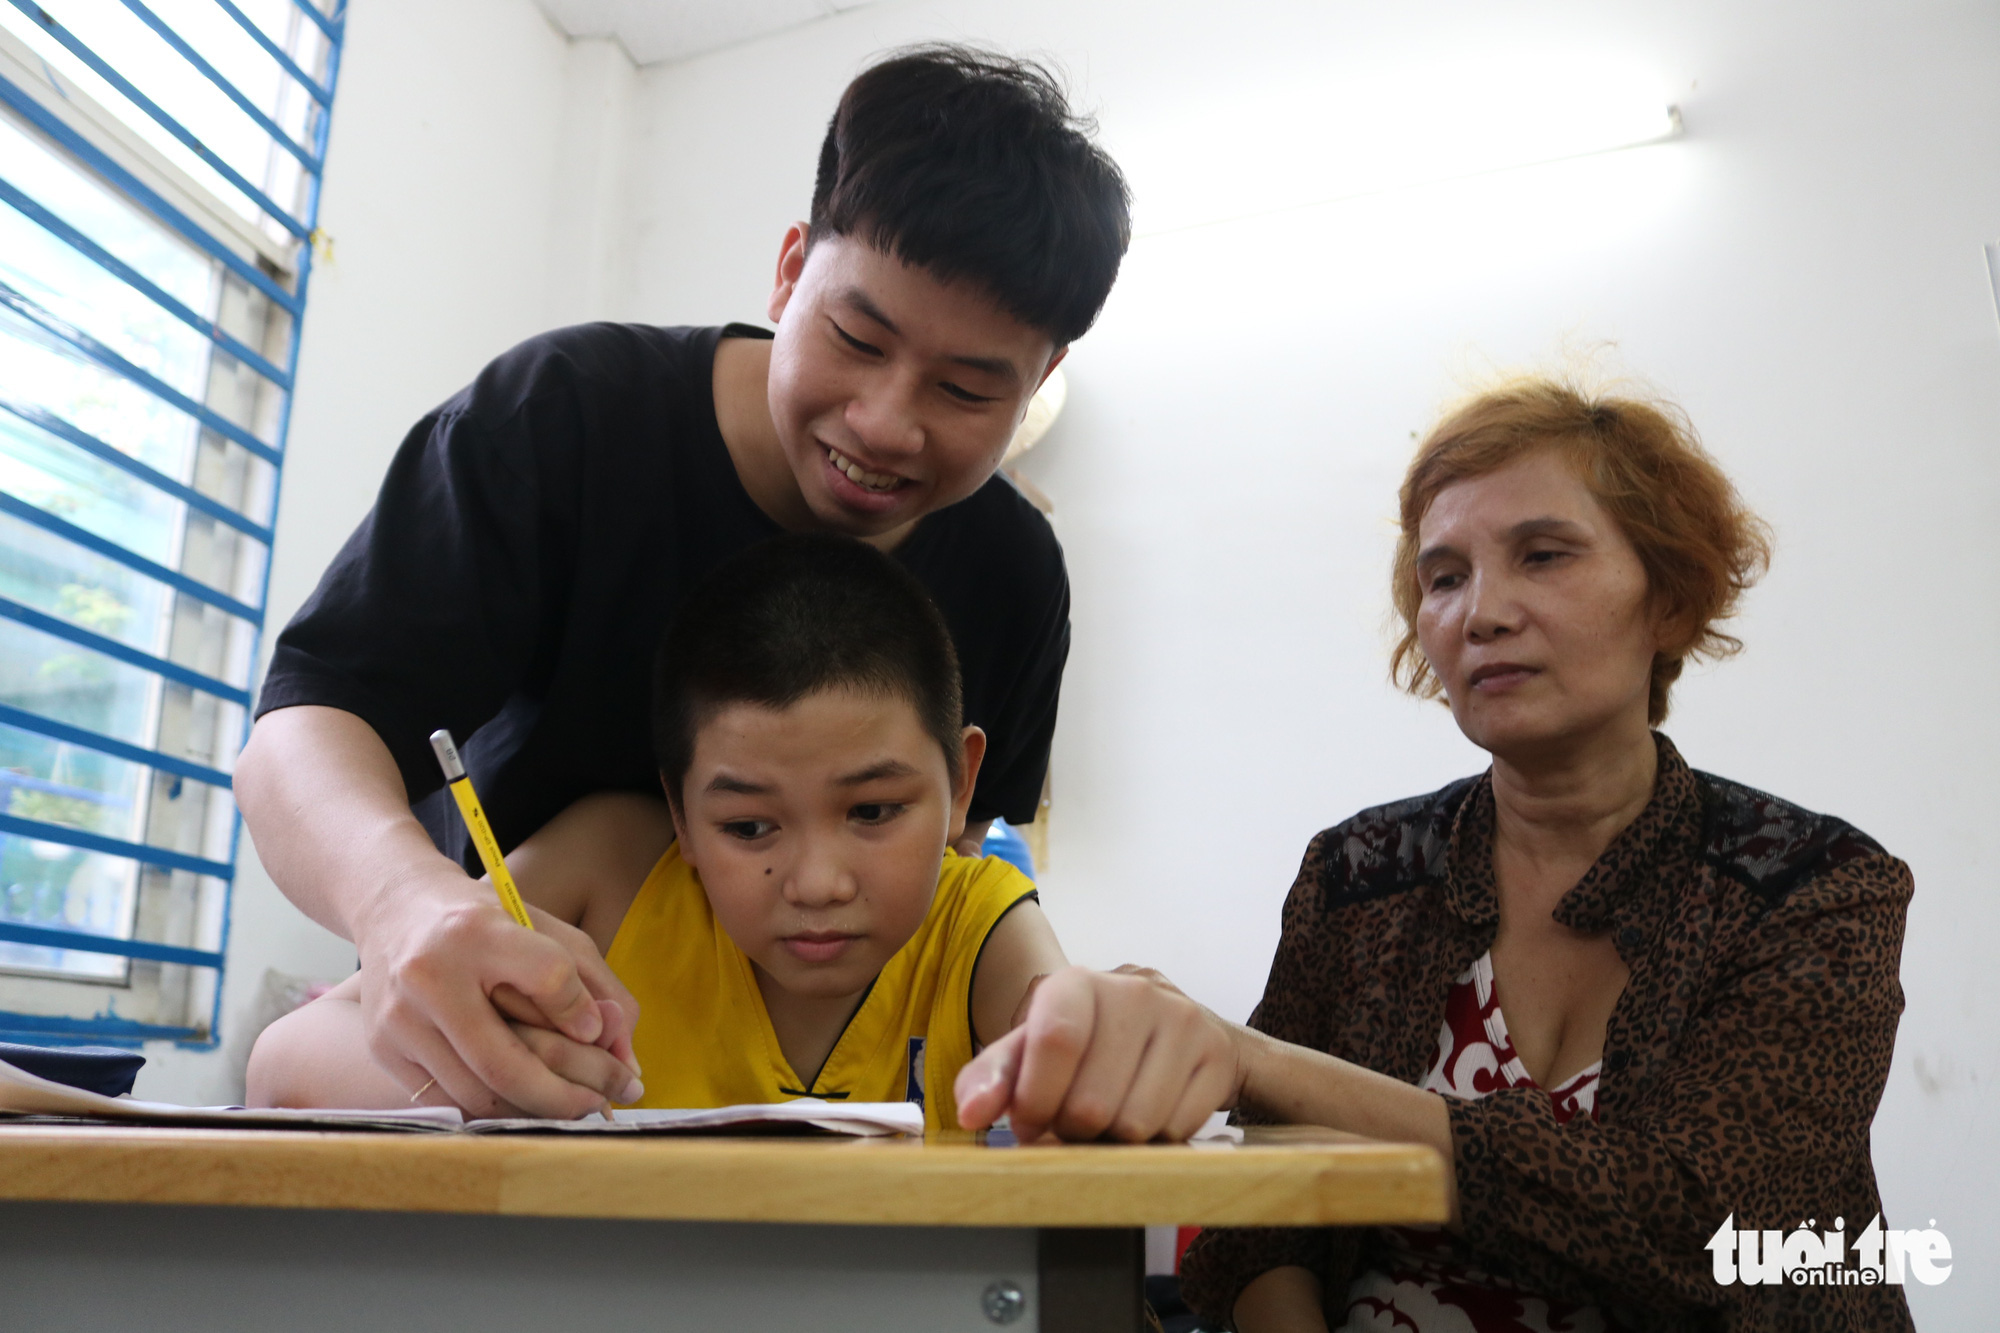 Nguyen Thi Xuan Thu (right) sits with her disabled child (left, sitting) as he is taught by Phan Trung Hai at a special class for underprivileged children in Ho Chi Minh City, Vietnam. Photo: Ngoc Phuong / Tuoi Tre